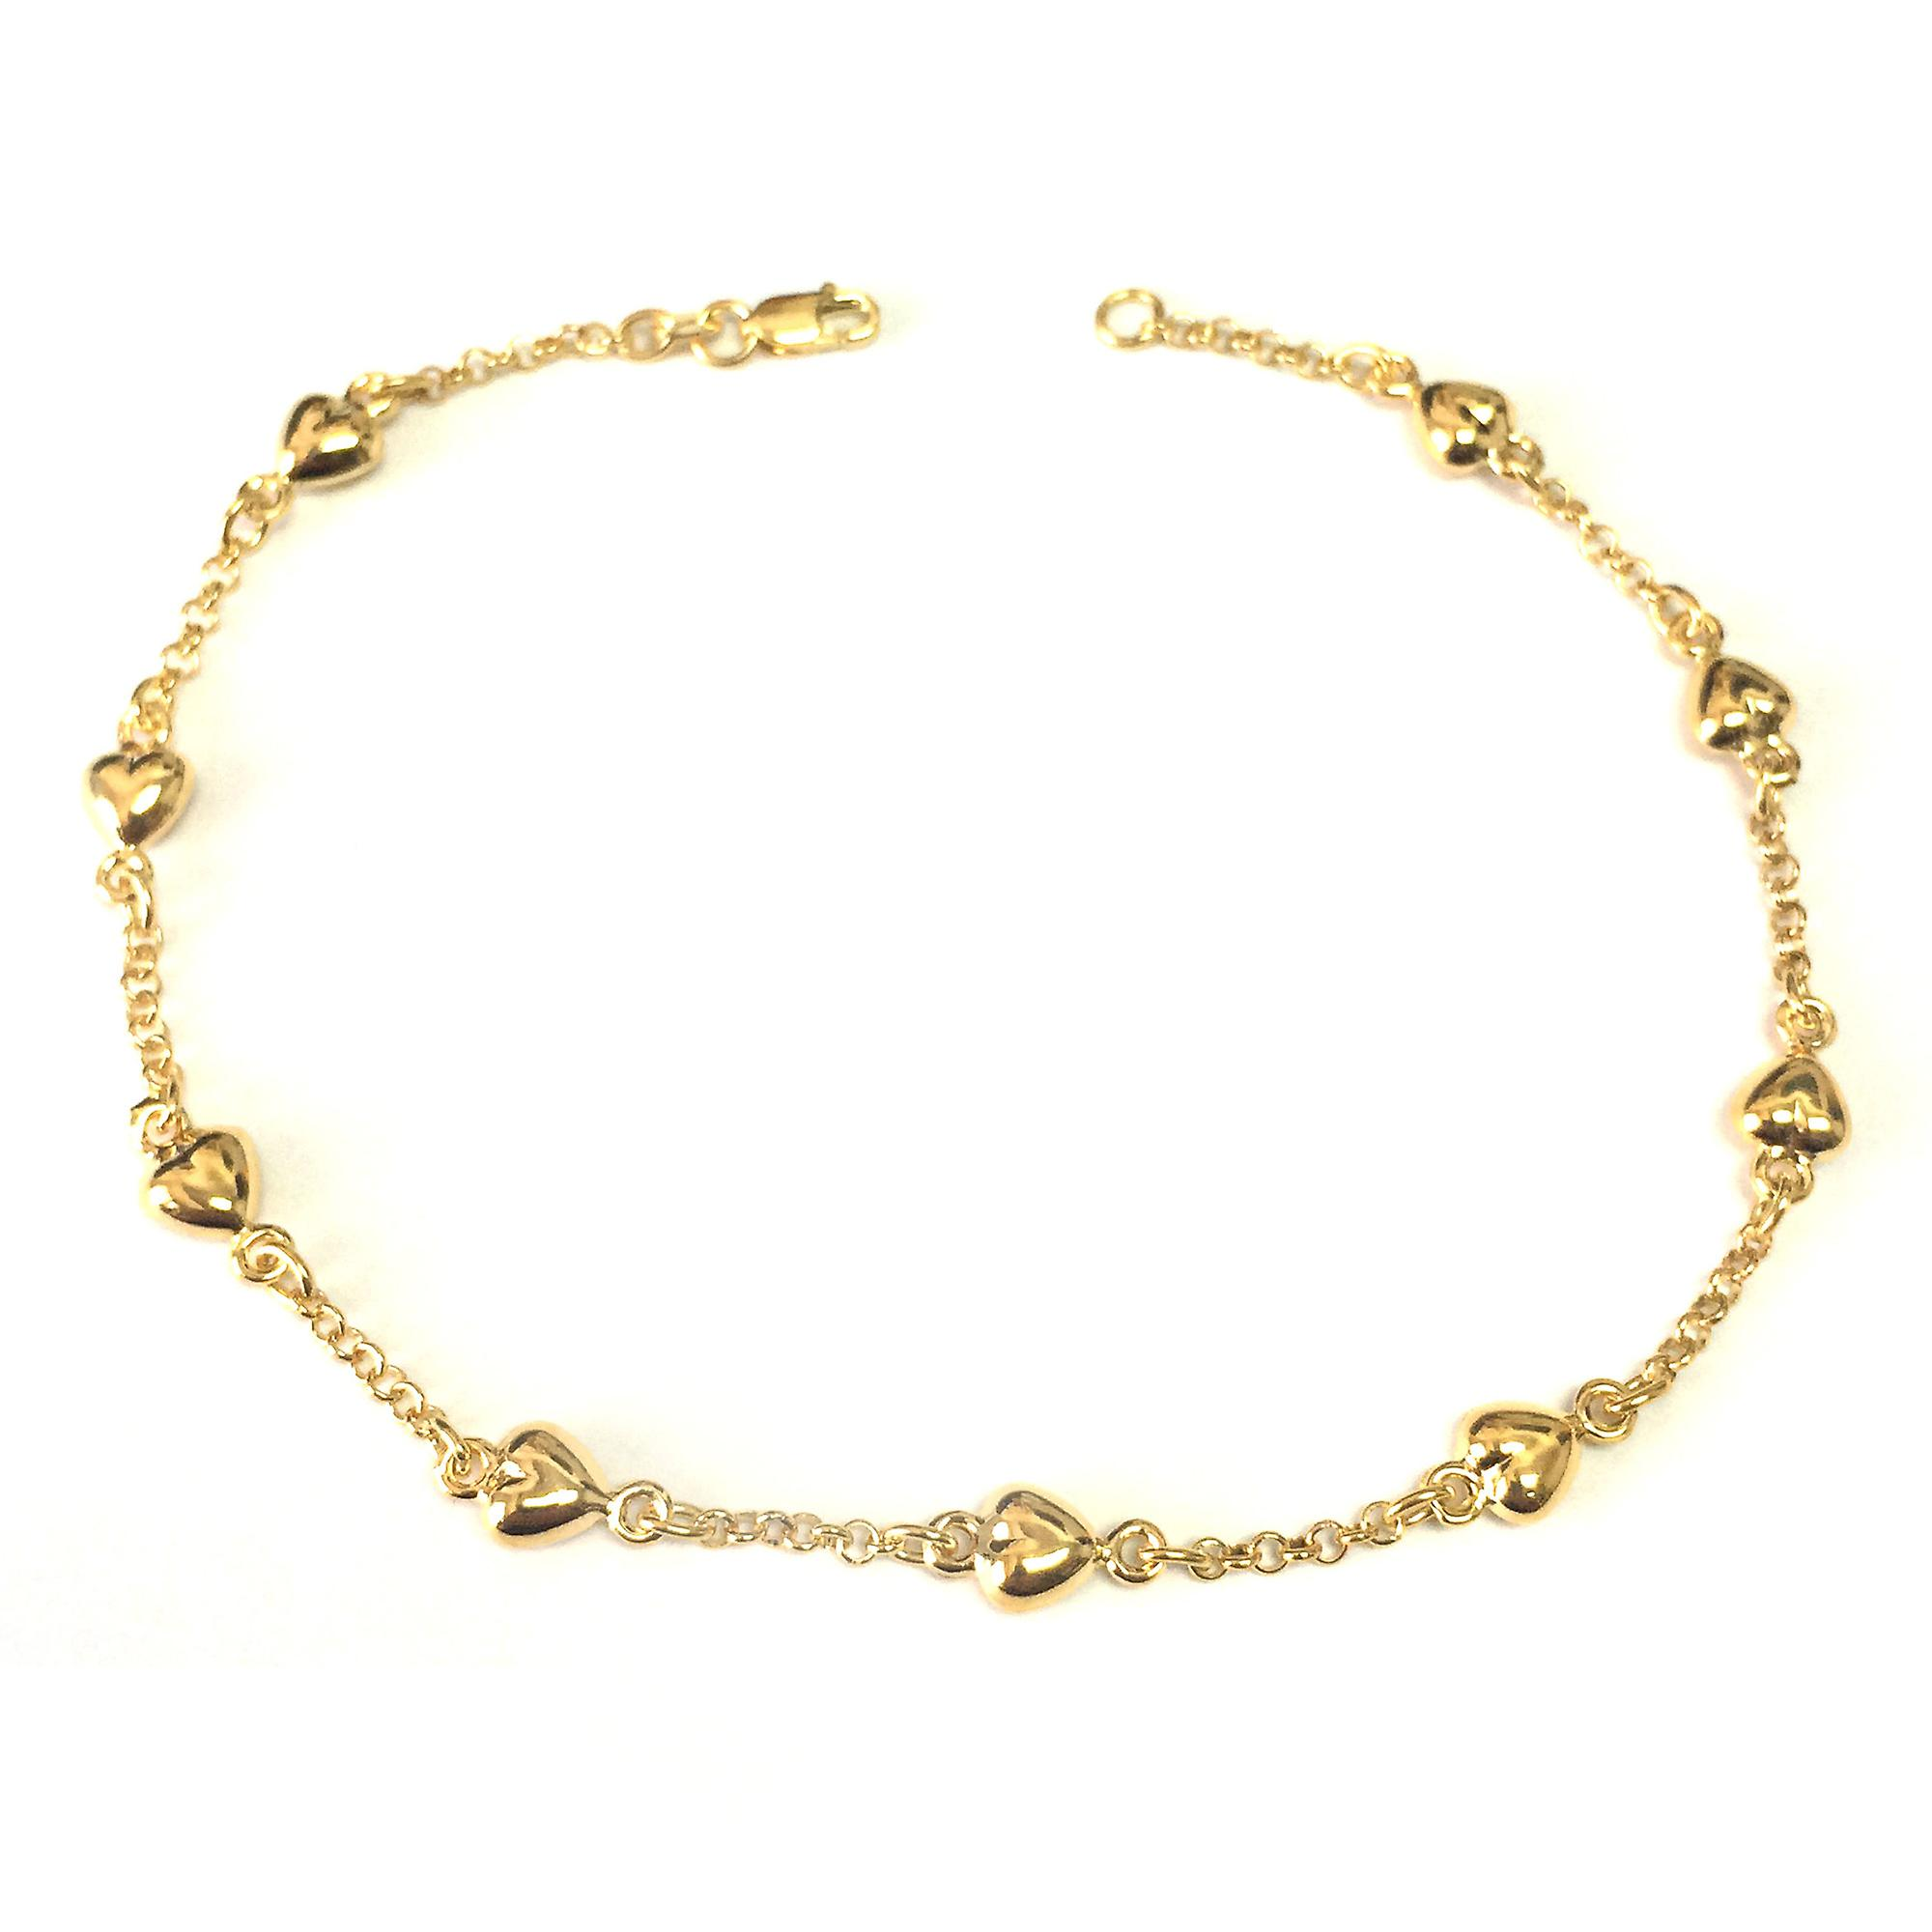 14K jaune or Puffed Hearts Anklet, 10& 034;